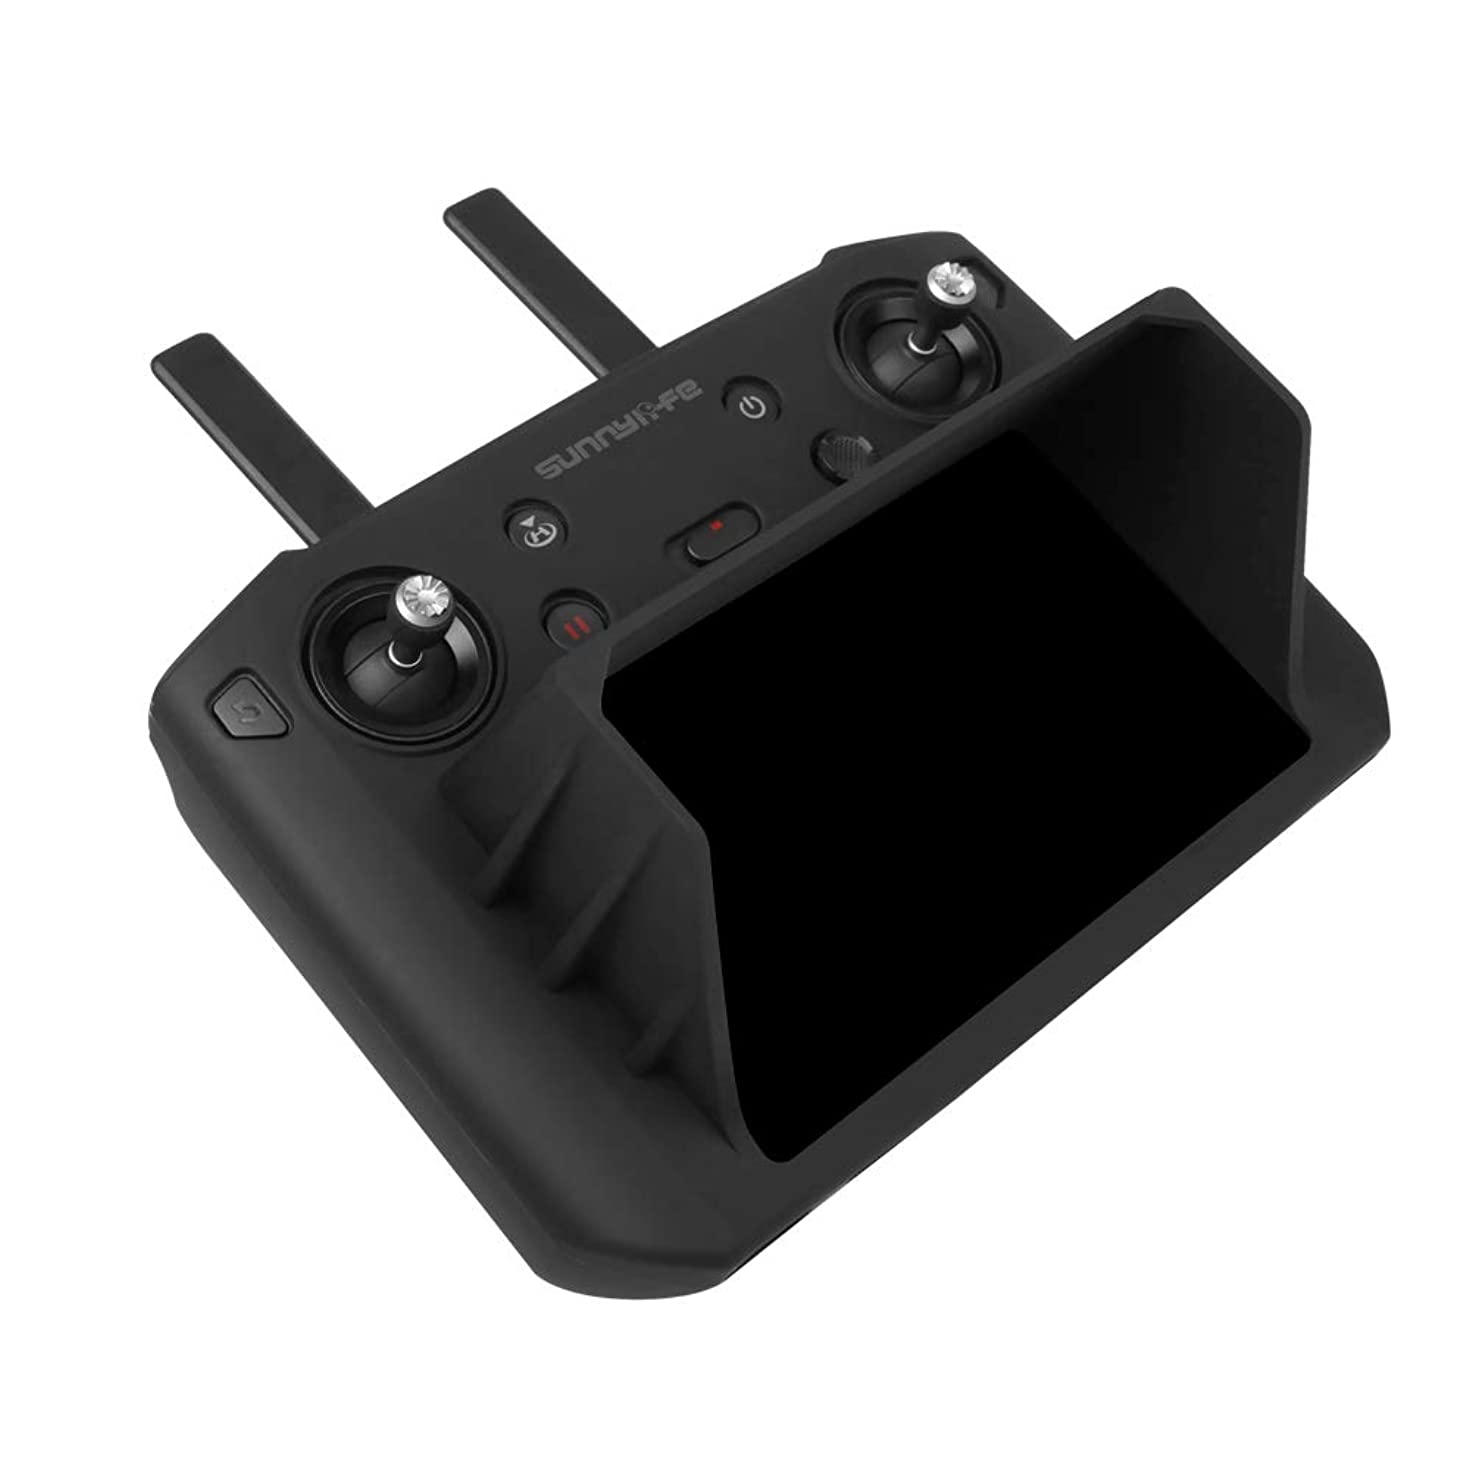 Anbee Protective Silicone Case Cover Sleeve with Sunshade Compatible with DJI Mavic 2 Smart Controller, Black (with Sun Hood)